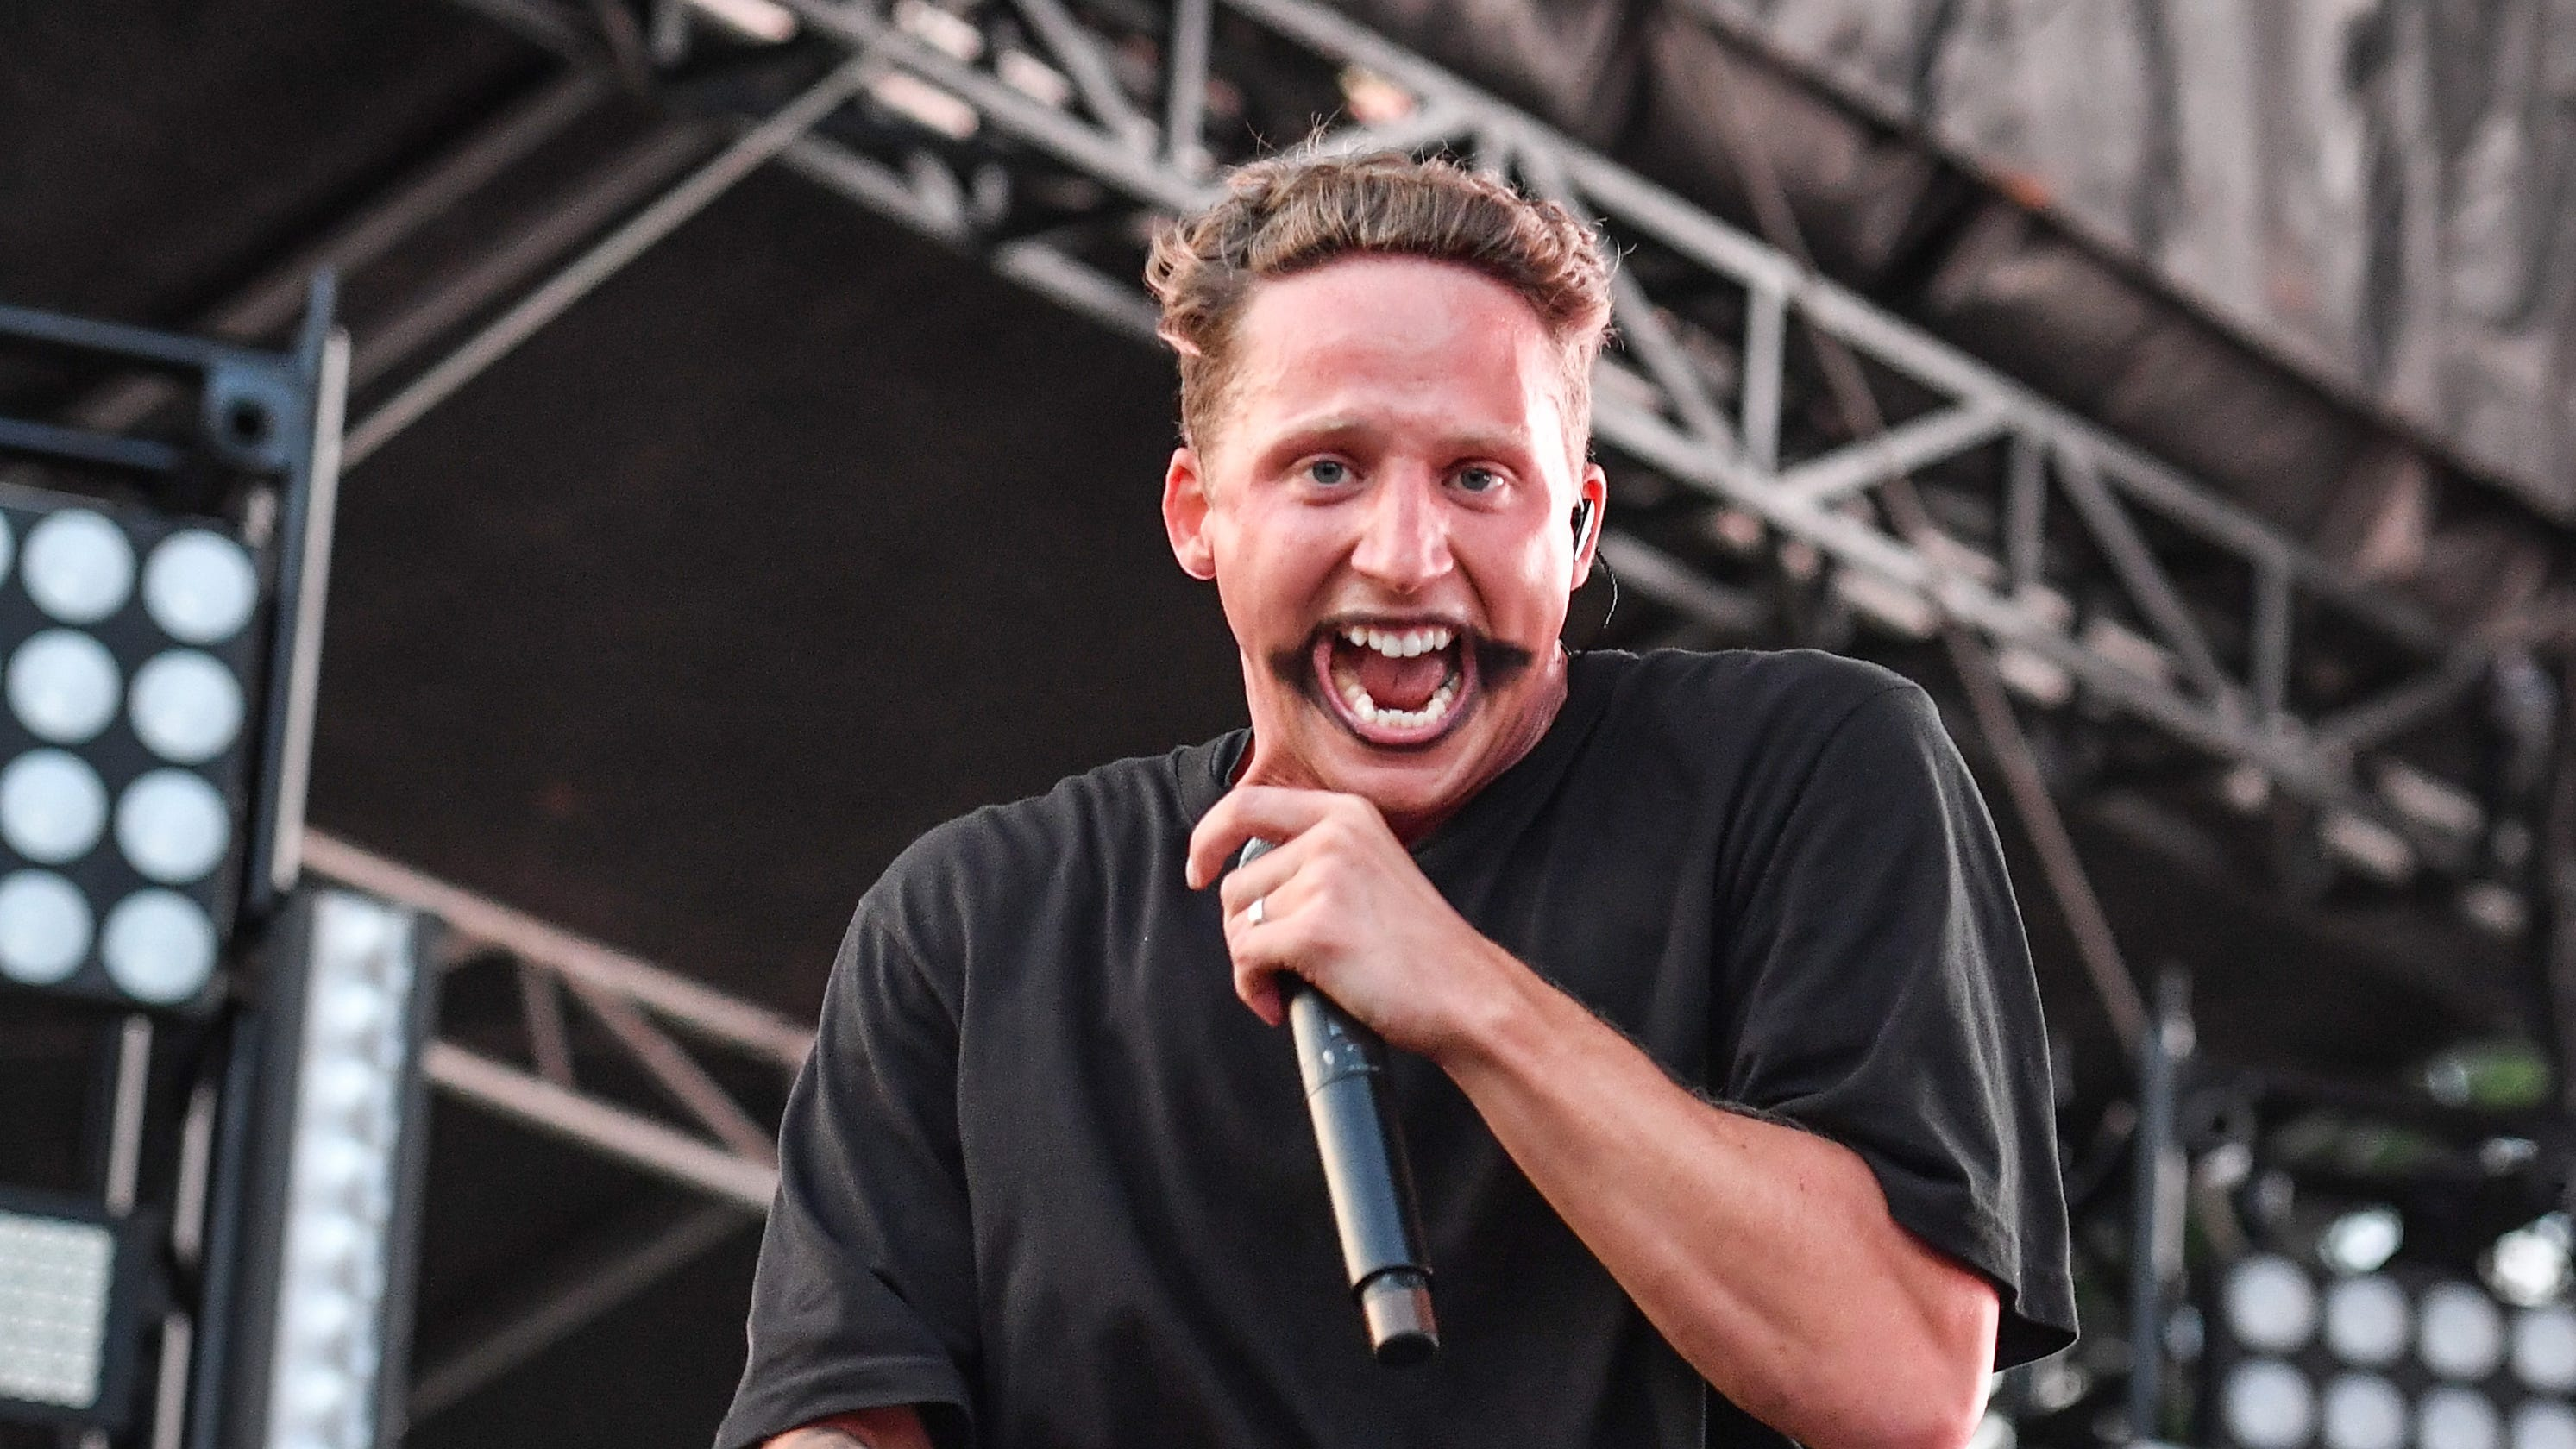 Who is NF, the Eminem-soundalike who beat Chance the Rapper